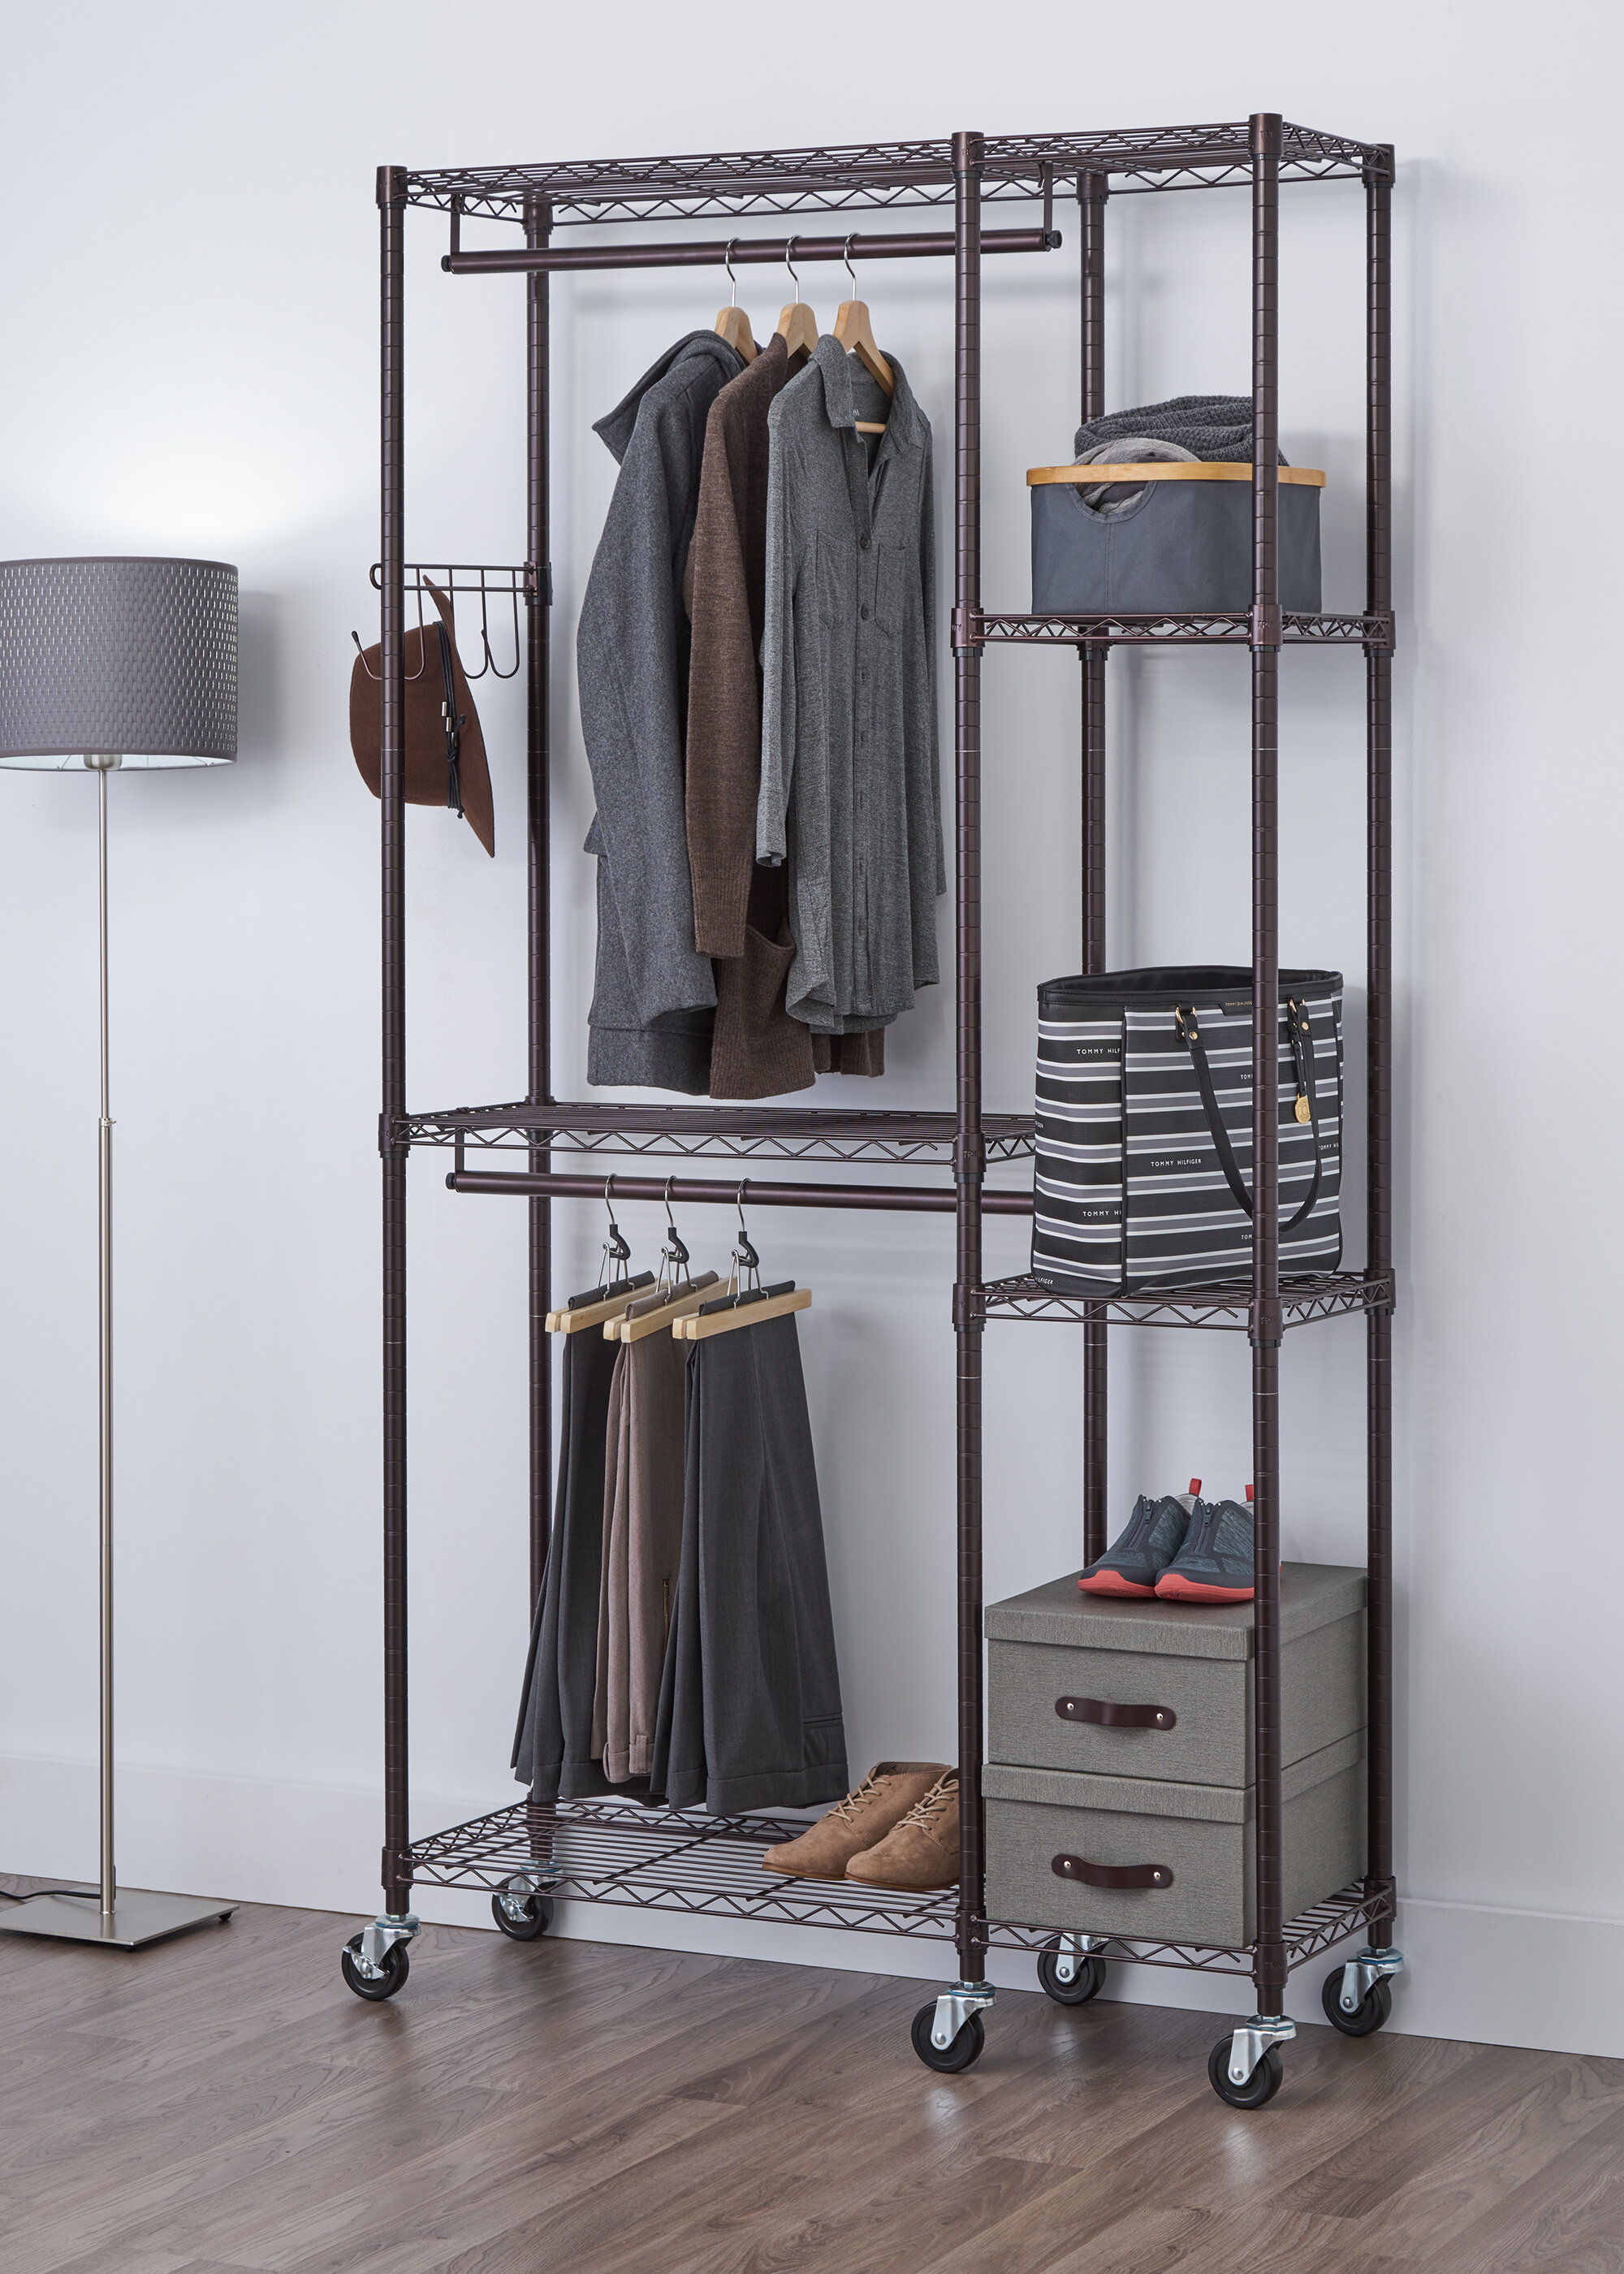 rebrilliant storage w industrial garment ca reviews rack wayfair rolling organization single pdp rod